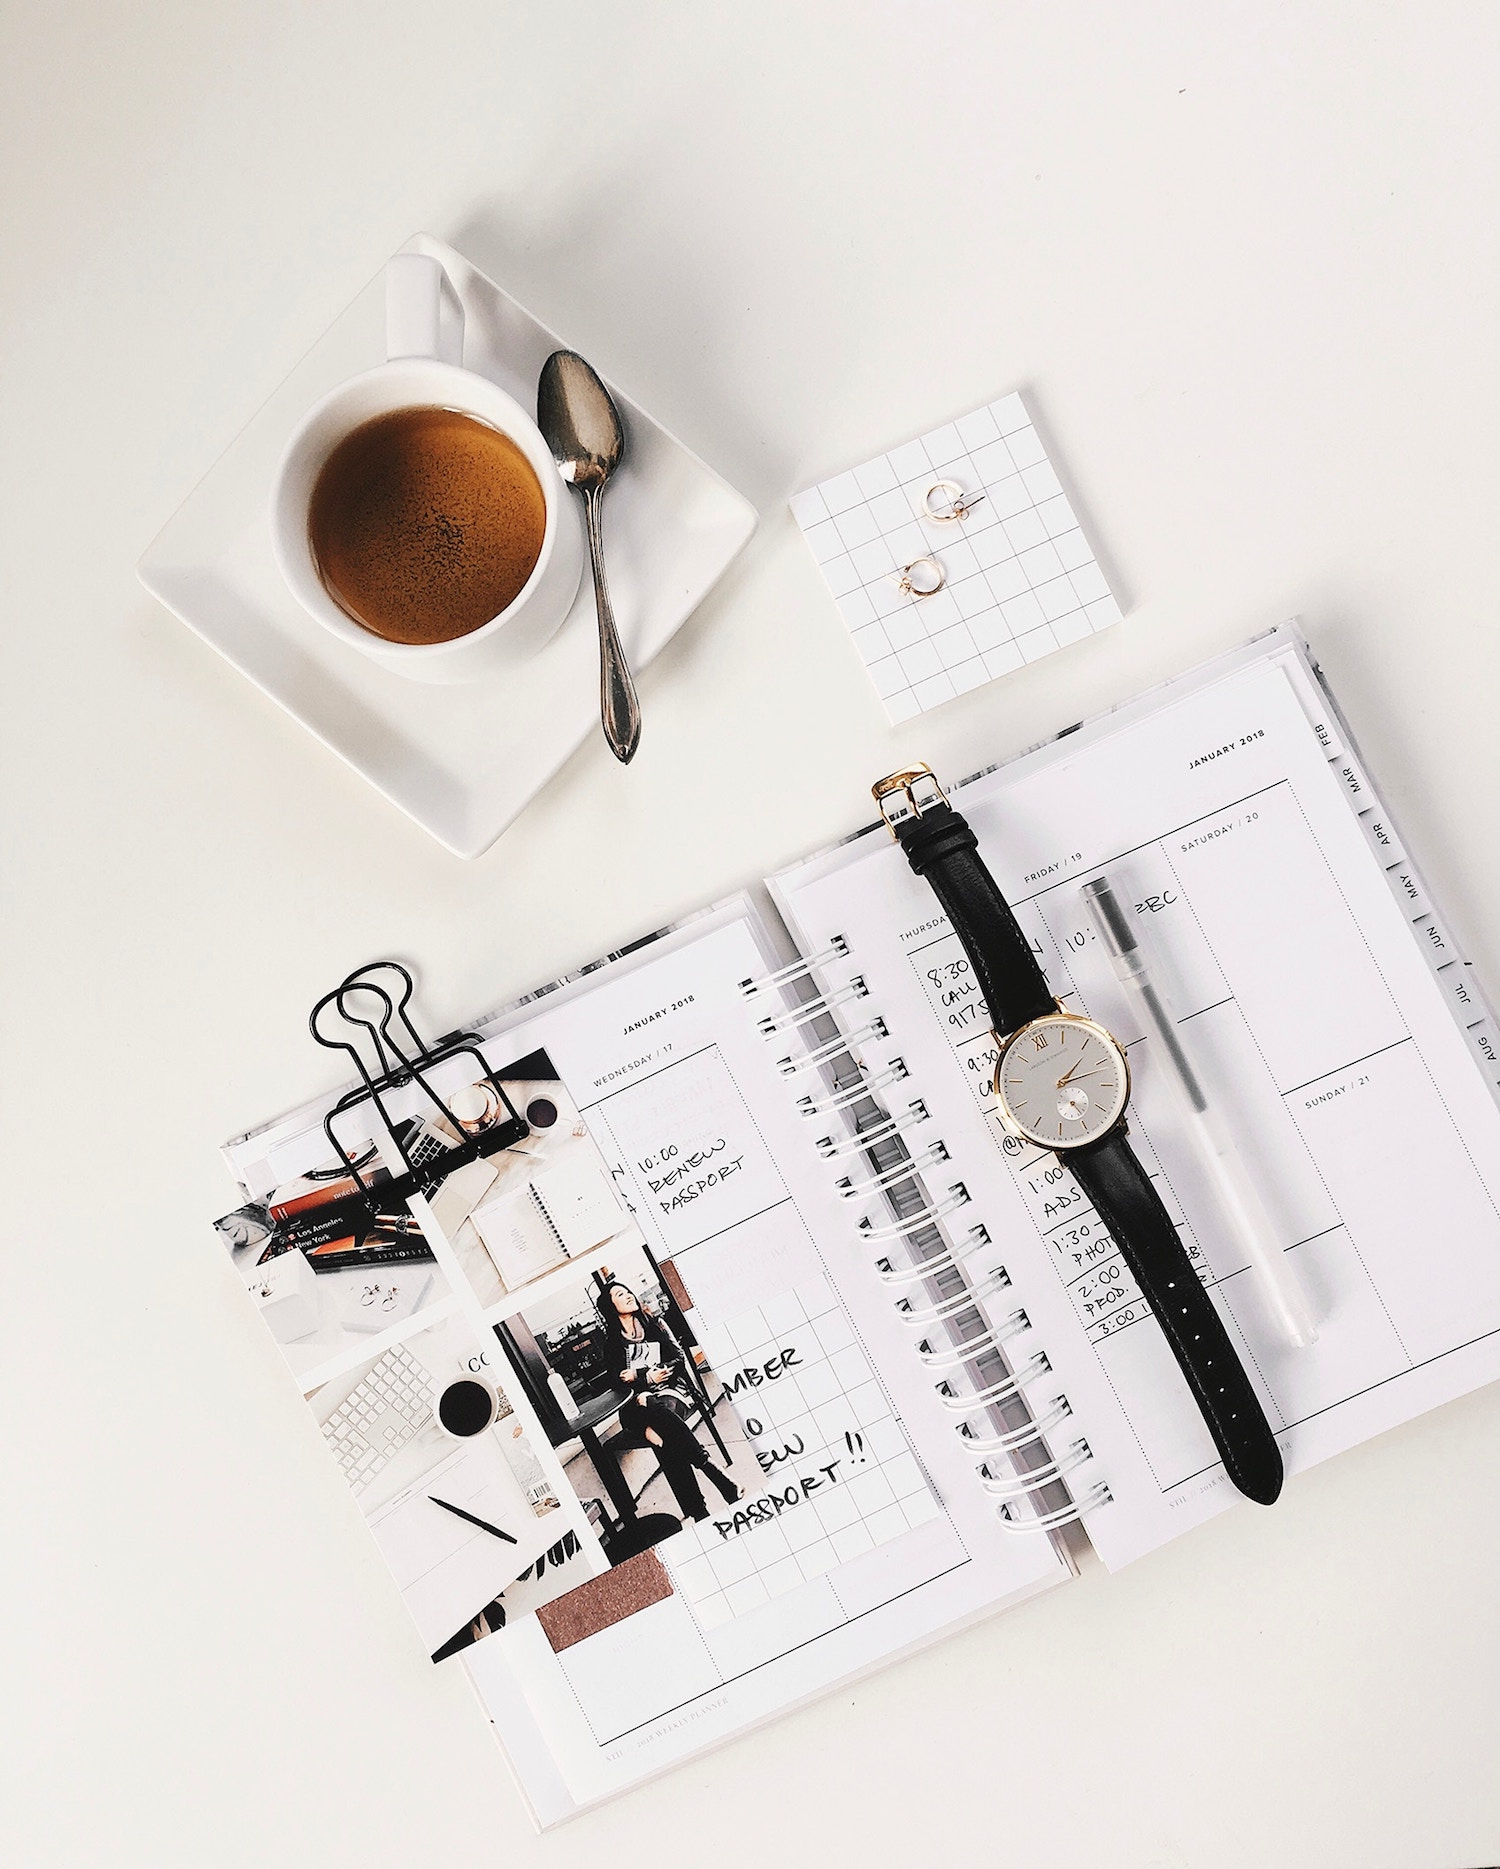 coffee planer flat lay on desk